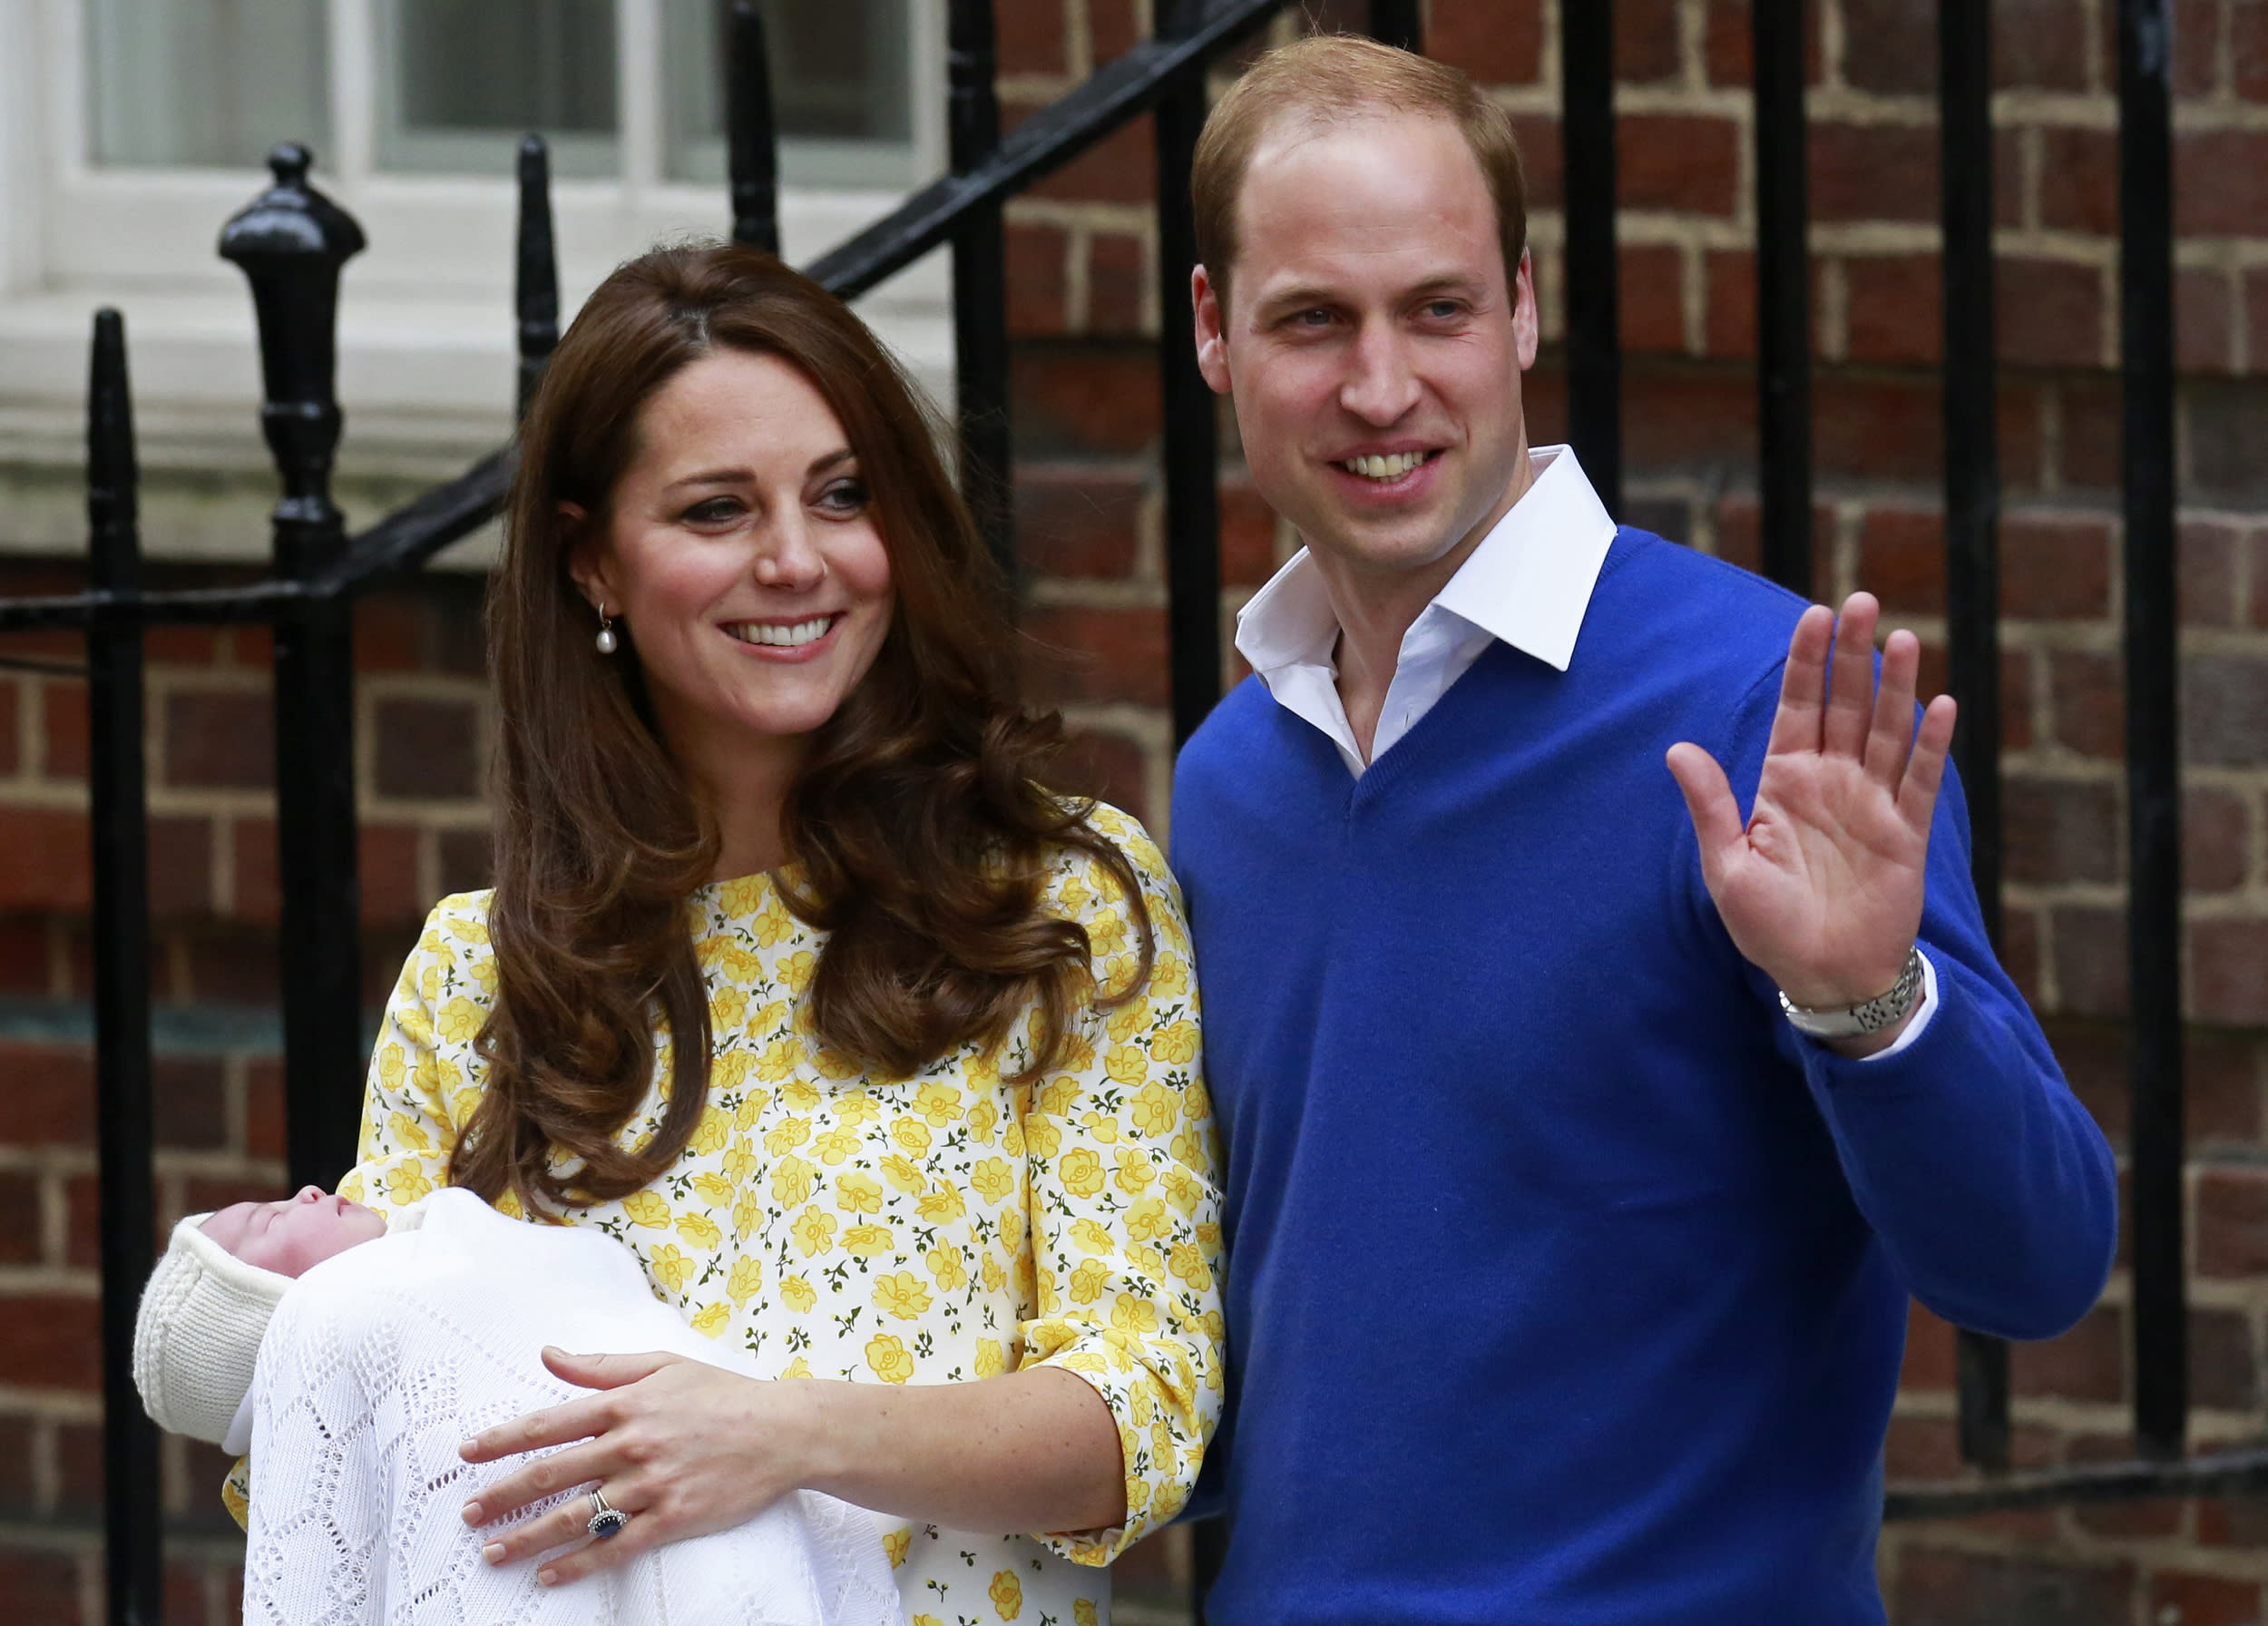 Britain's Prince William and his wife Catherine, Duchess of Cambridge, appear with their baby daughter, Charlotte Elizabeth Diana, outside the Lindo Wing of St Mary's Hospital, in London, Britain May 2, 2015. The Duchess of Cambridge, gave birth to a girl on Saturday, the couple's second child and a sister to one-year-old Prince George.      REUTERS/Cathal McNaughton